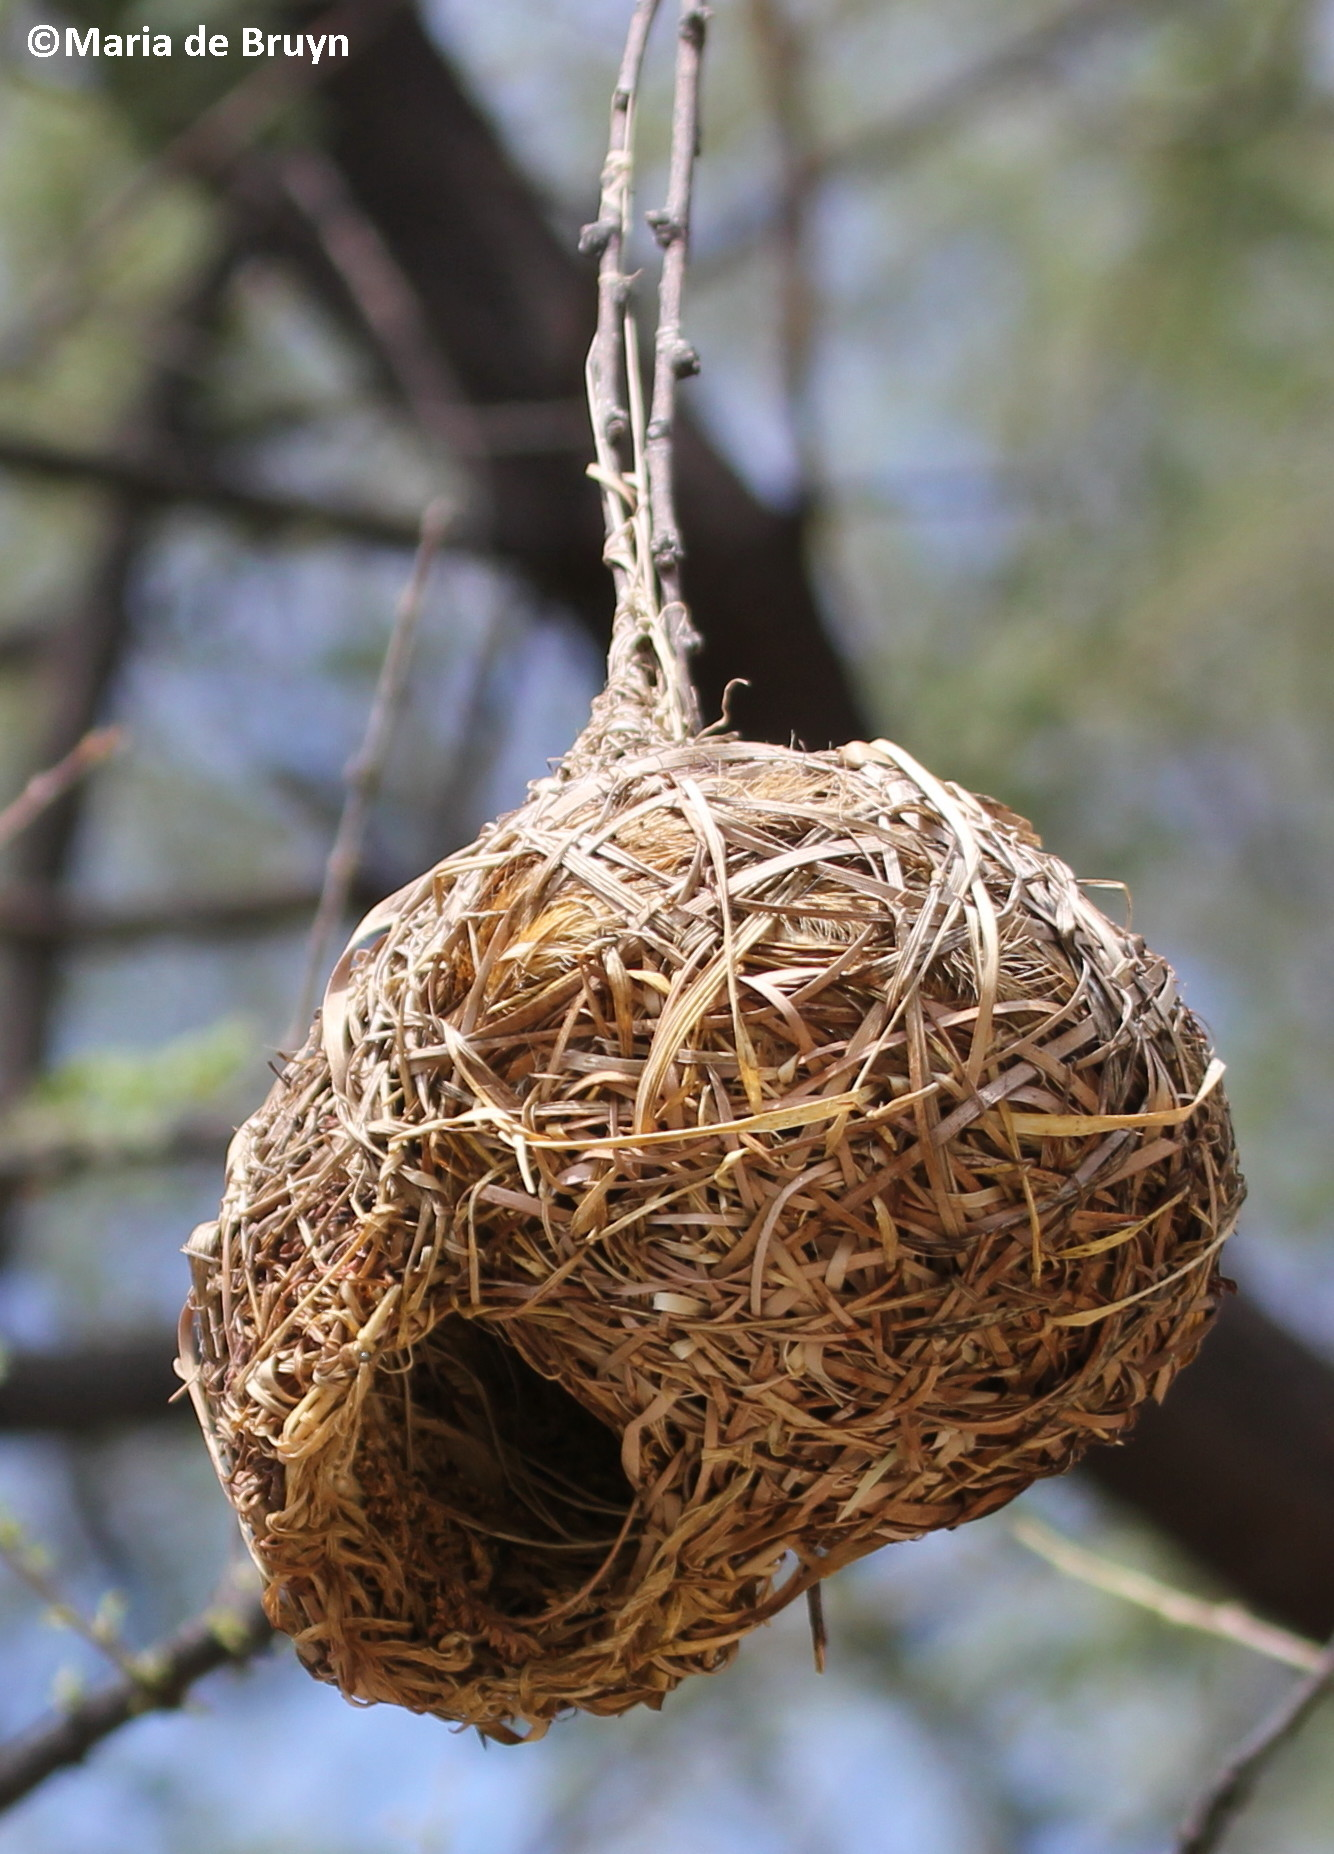 Weaver bird nest pictures - photo#11